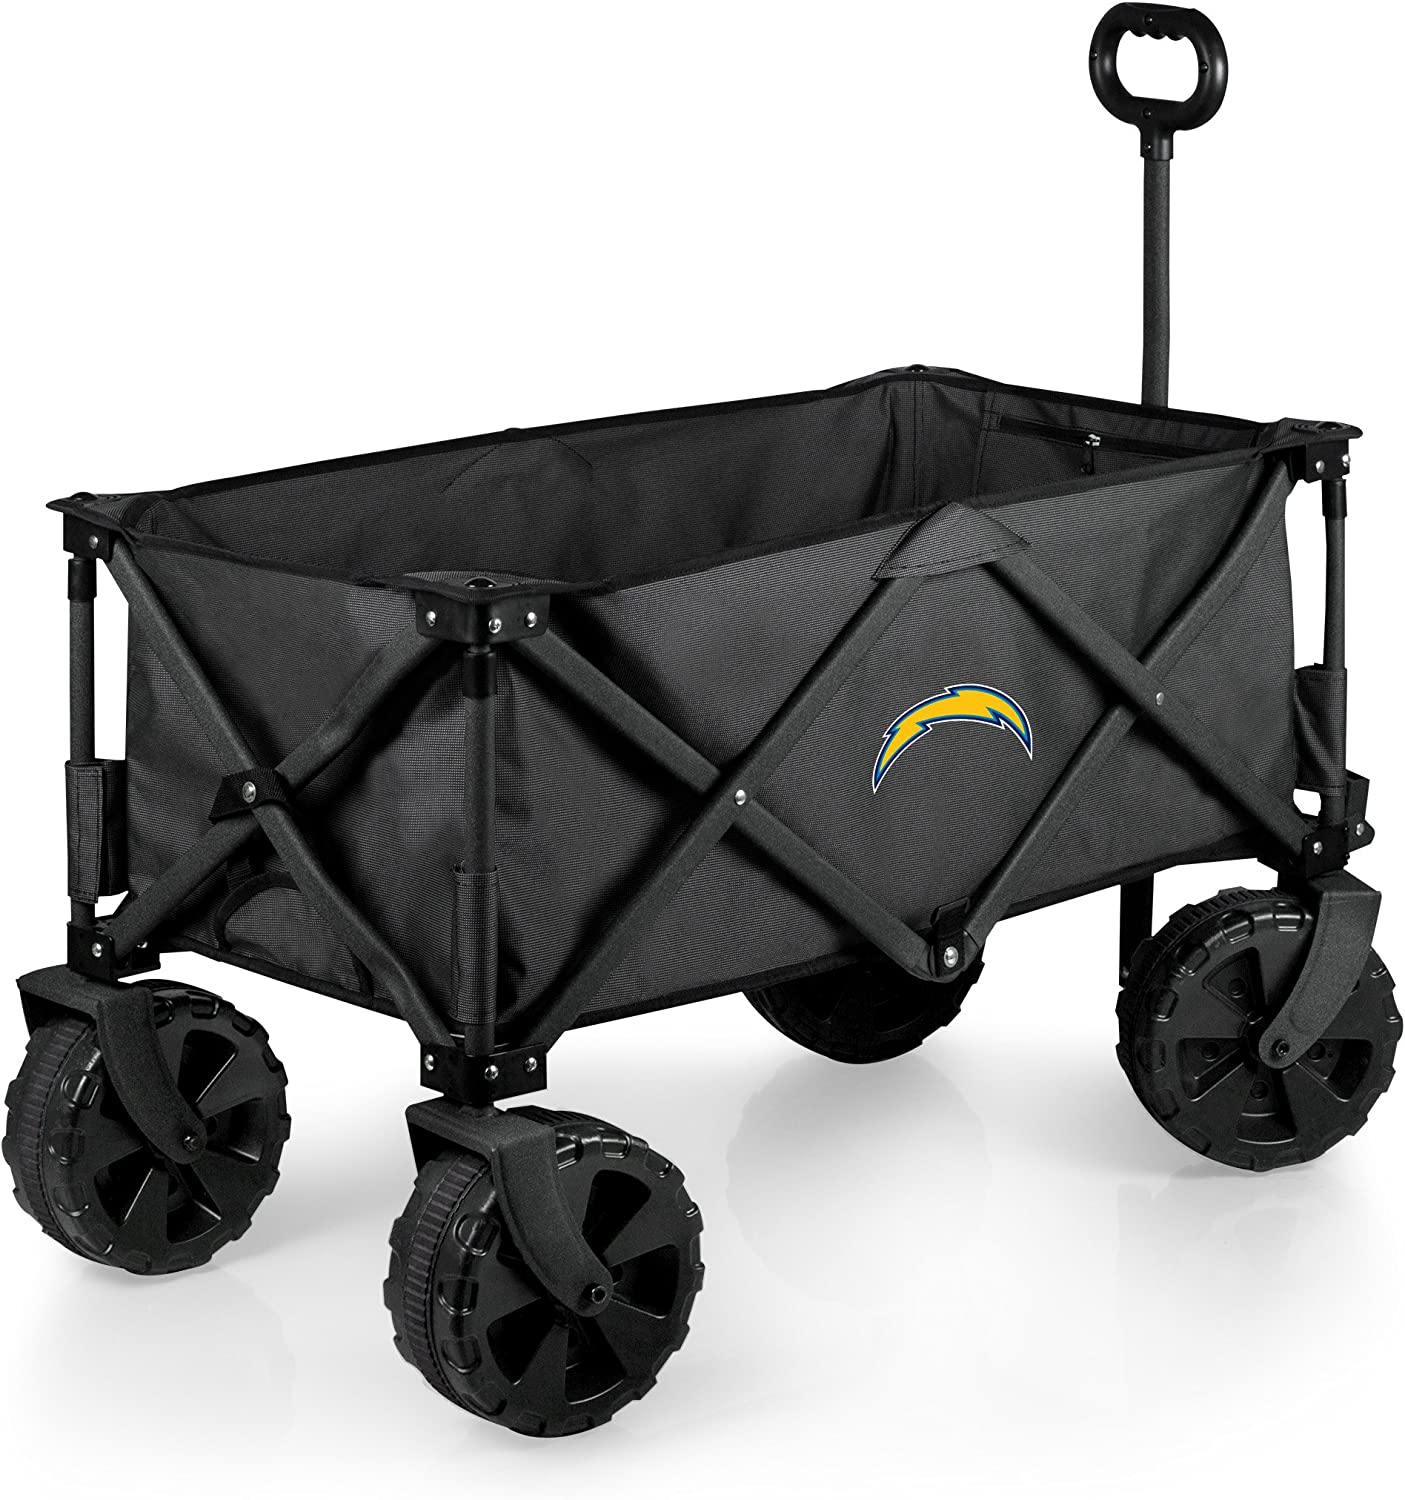 NFL Los Angeles Chargers Elite Edition Collapsible Adventure Wagon with All-Terrain Wheels